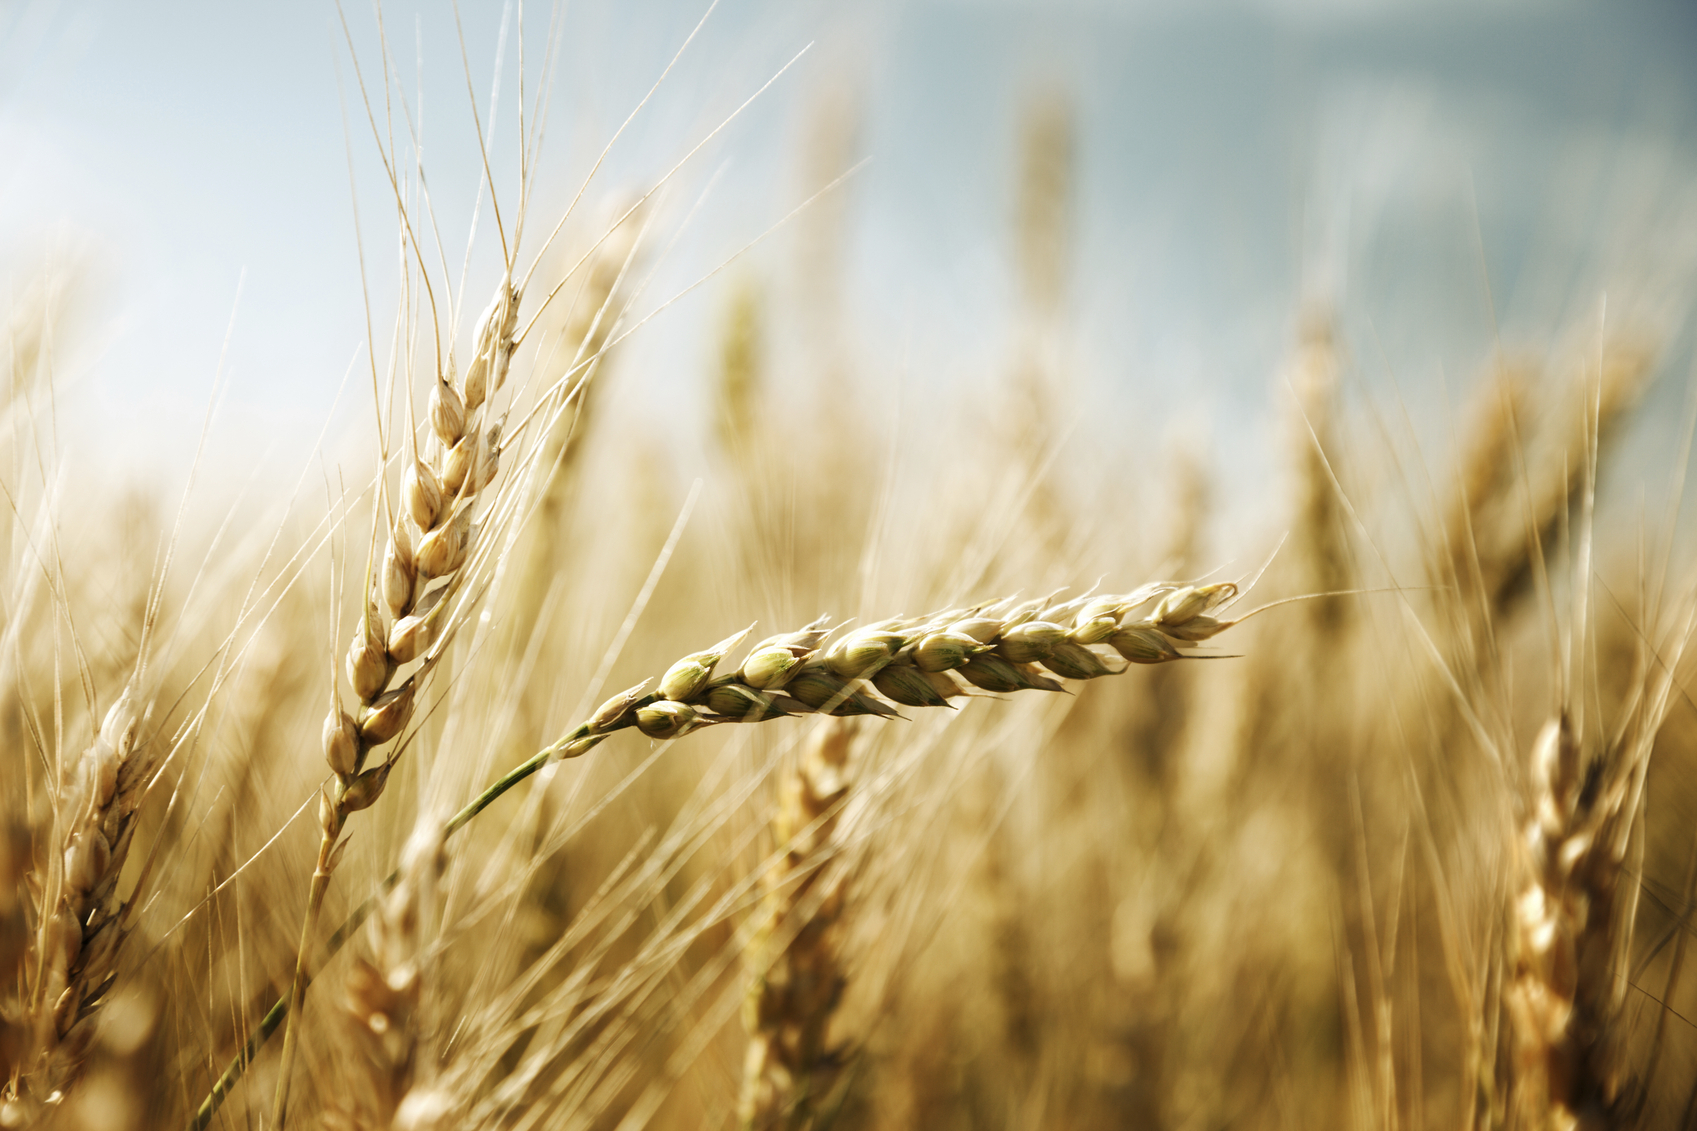 The new varieties have improved yields, disease resistance and earlier maturity